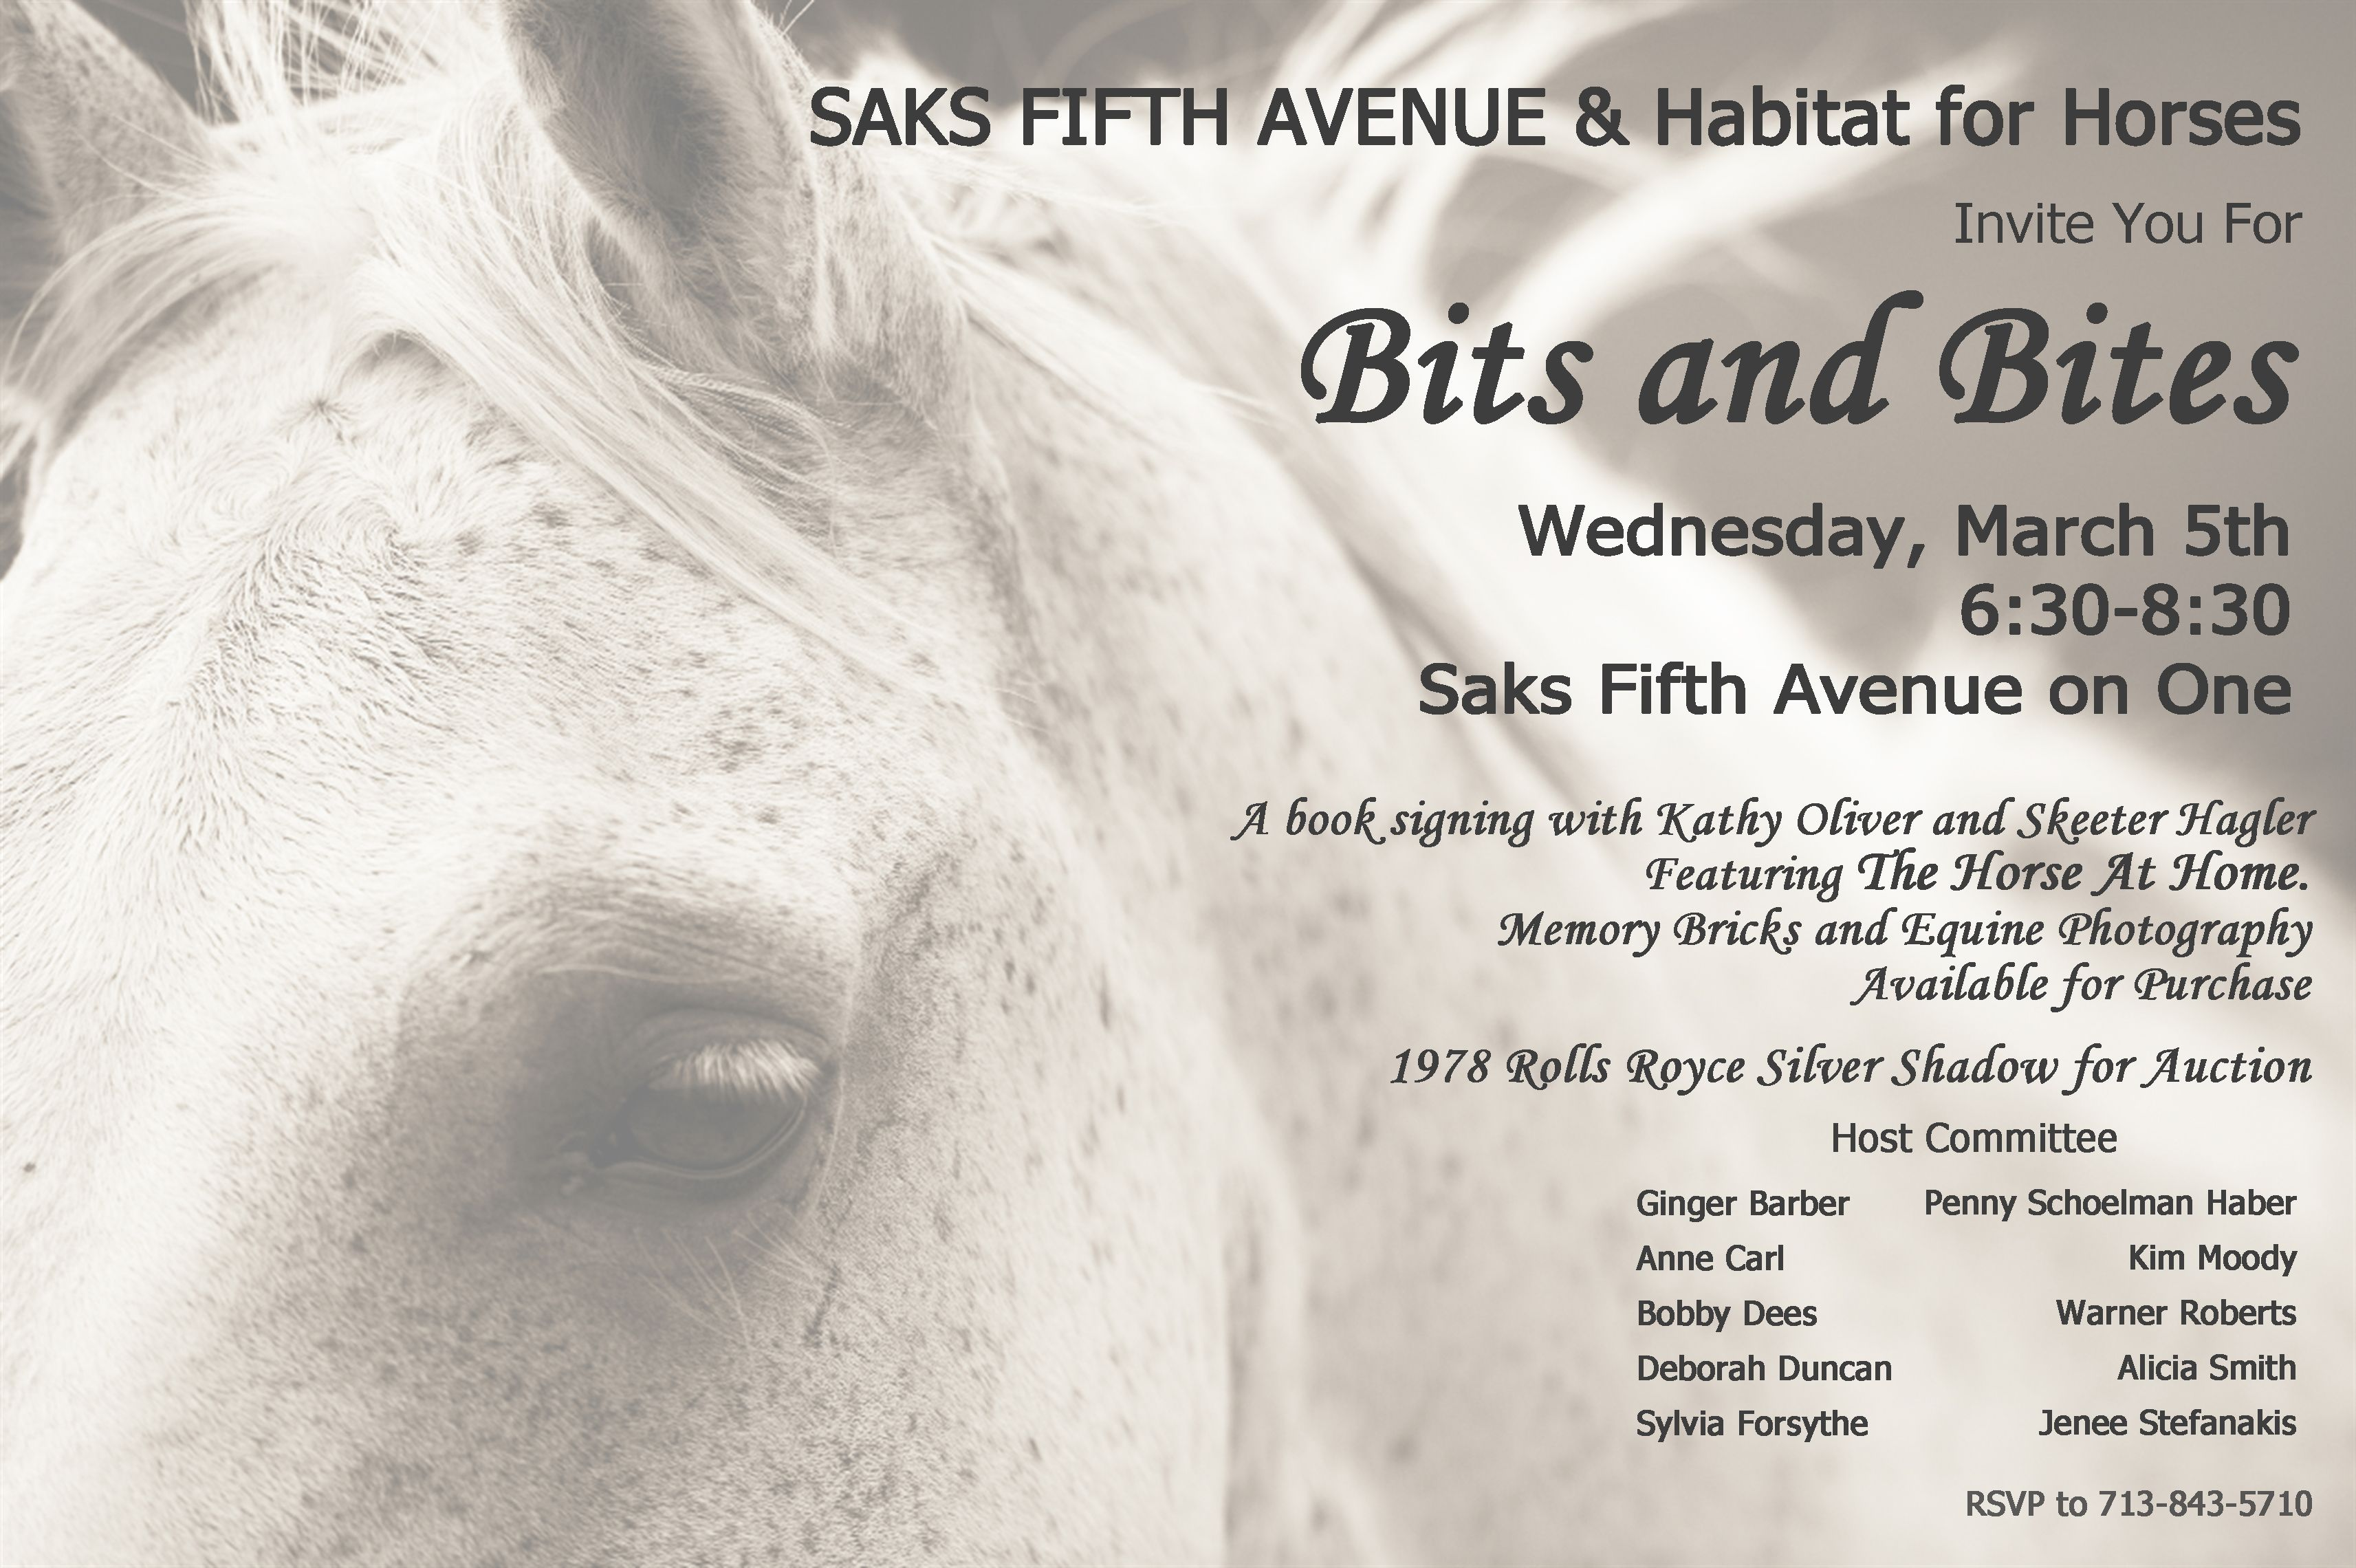 Saks Fifth Avenue and Habitat for Horses invites you for Bits and Bites, Wednesday, March 5th 6:30 - 8:30 Saks Fifth Avenue on One A book signing with Kathy Oliver and Skeeter Hagler. Featuring The Horse at Home, Memory Bricks and Equine Photography Available for Purchase. 1978 Rolls Royce Silver Shadow for Auction. Host Committee Ginger Barbar, Penny Schoelman Haber, Anne Carl, Kim Moody, Bobby Dees, Warner Roberts, Deborah Duncan, Alicia Smith, Sylvia Forsythe, Jenee Stefanakis RSVP to 713-843-5710